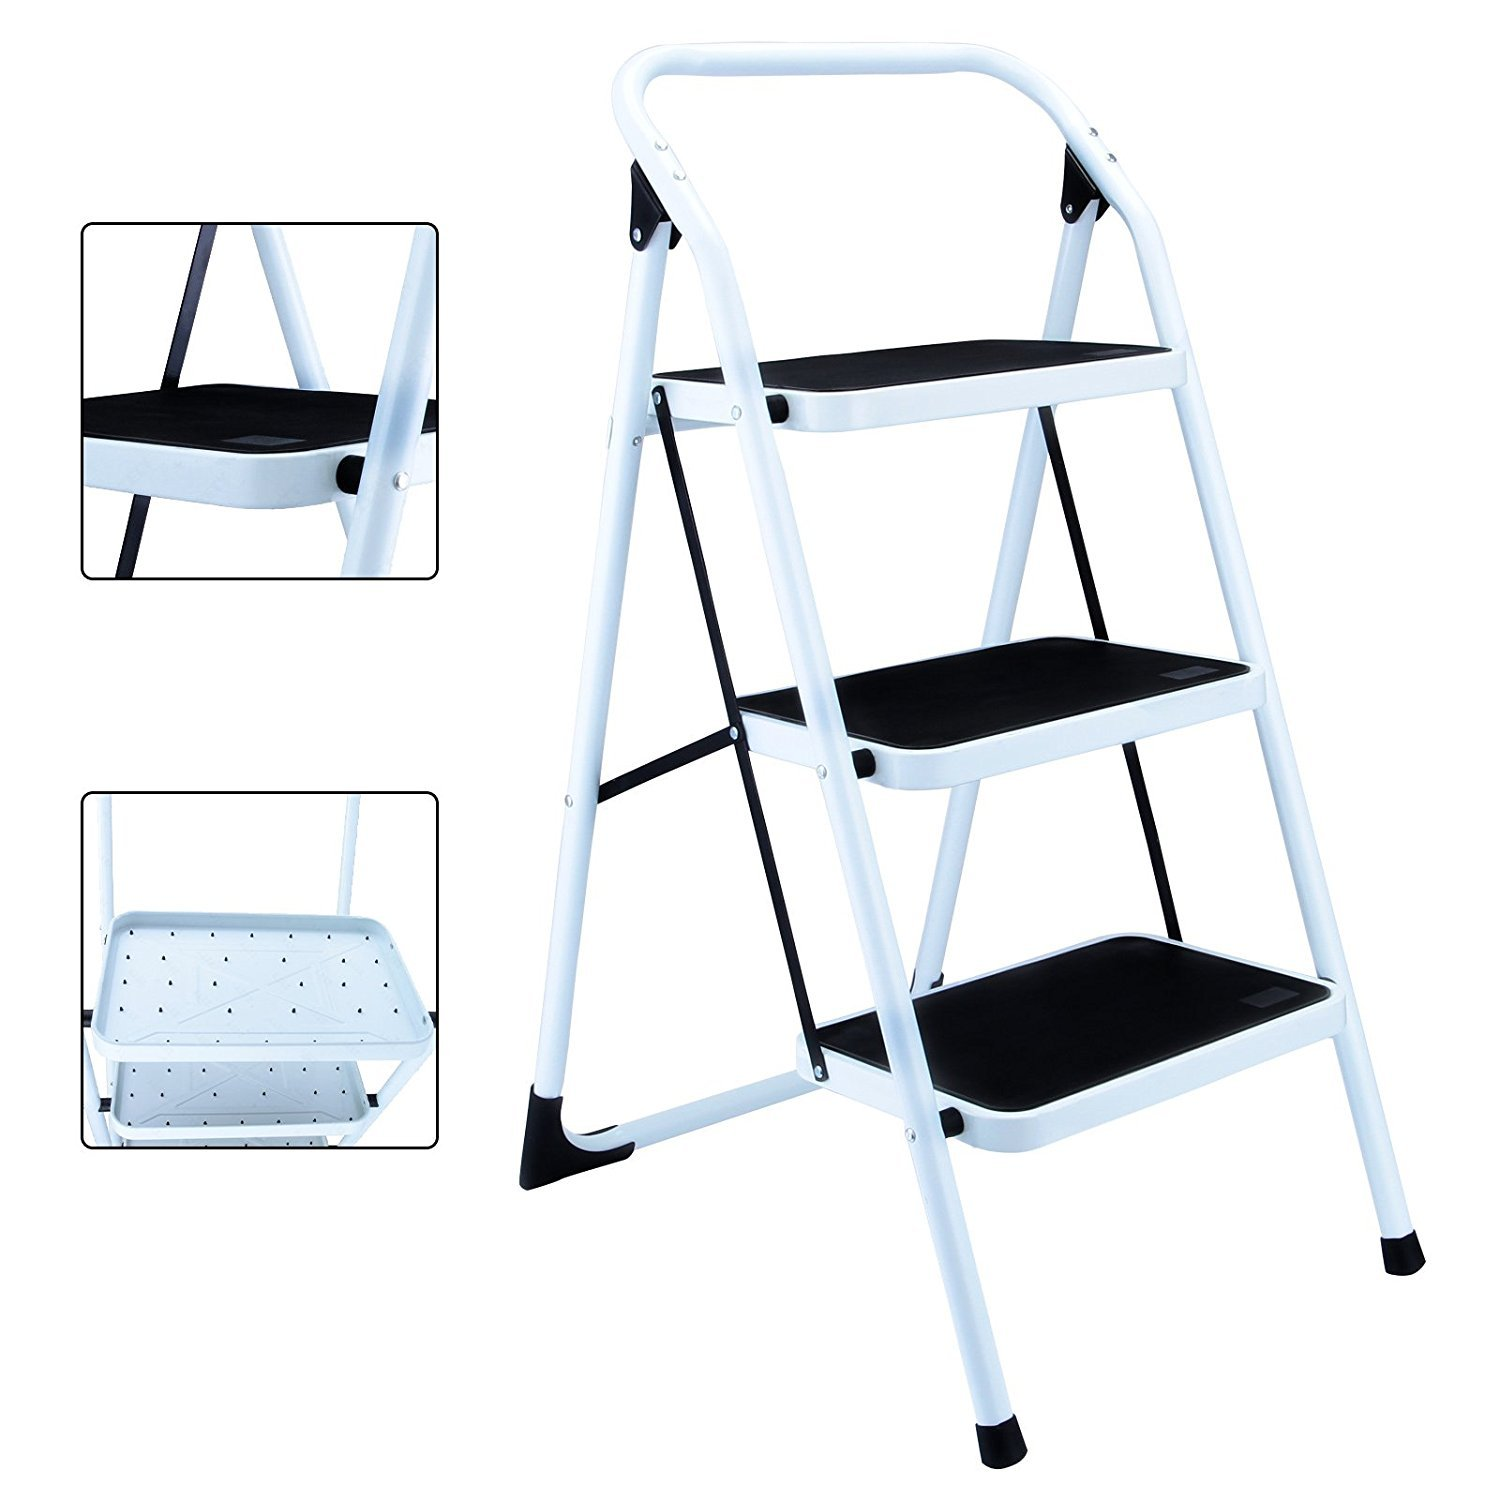 Gaogoo Folding 3 Step Ladder Anti-Slip Sturdy and Wide Pedal 330lbs Portable Steel Step Stool Kitchen Home Use